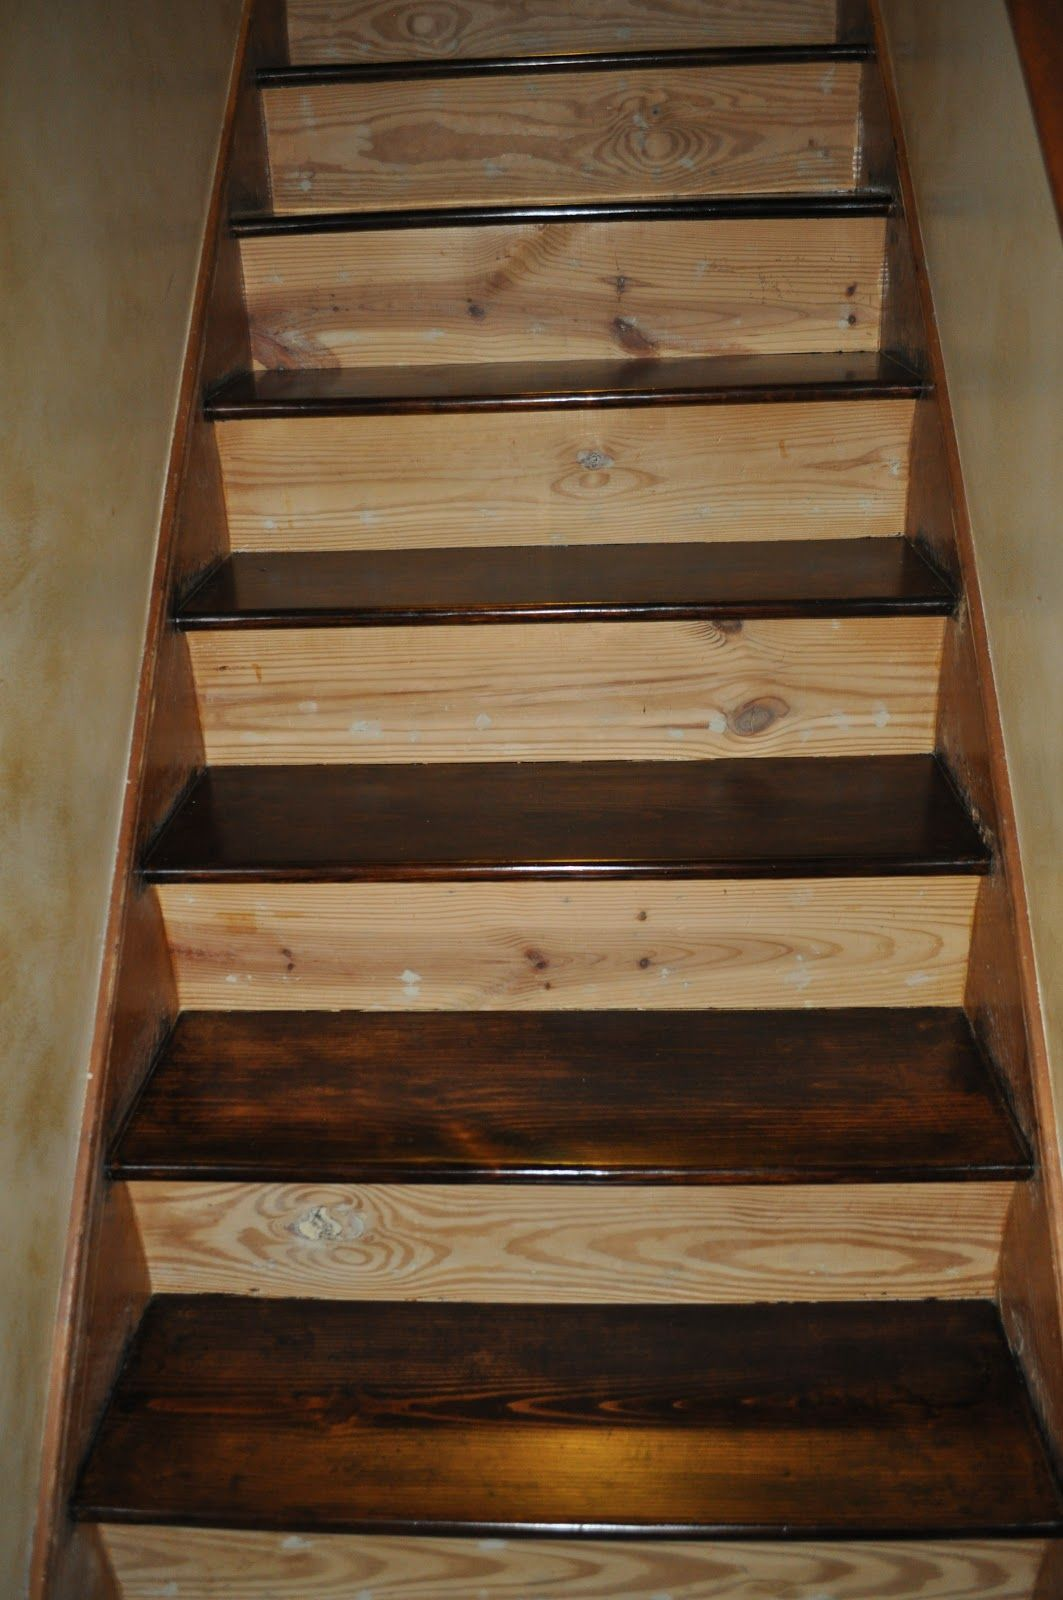 Best Stairs 14 Jpg 1 063×1 600 Pixels With Images Diy 400 x 300